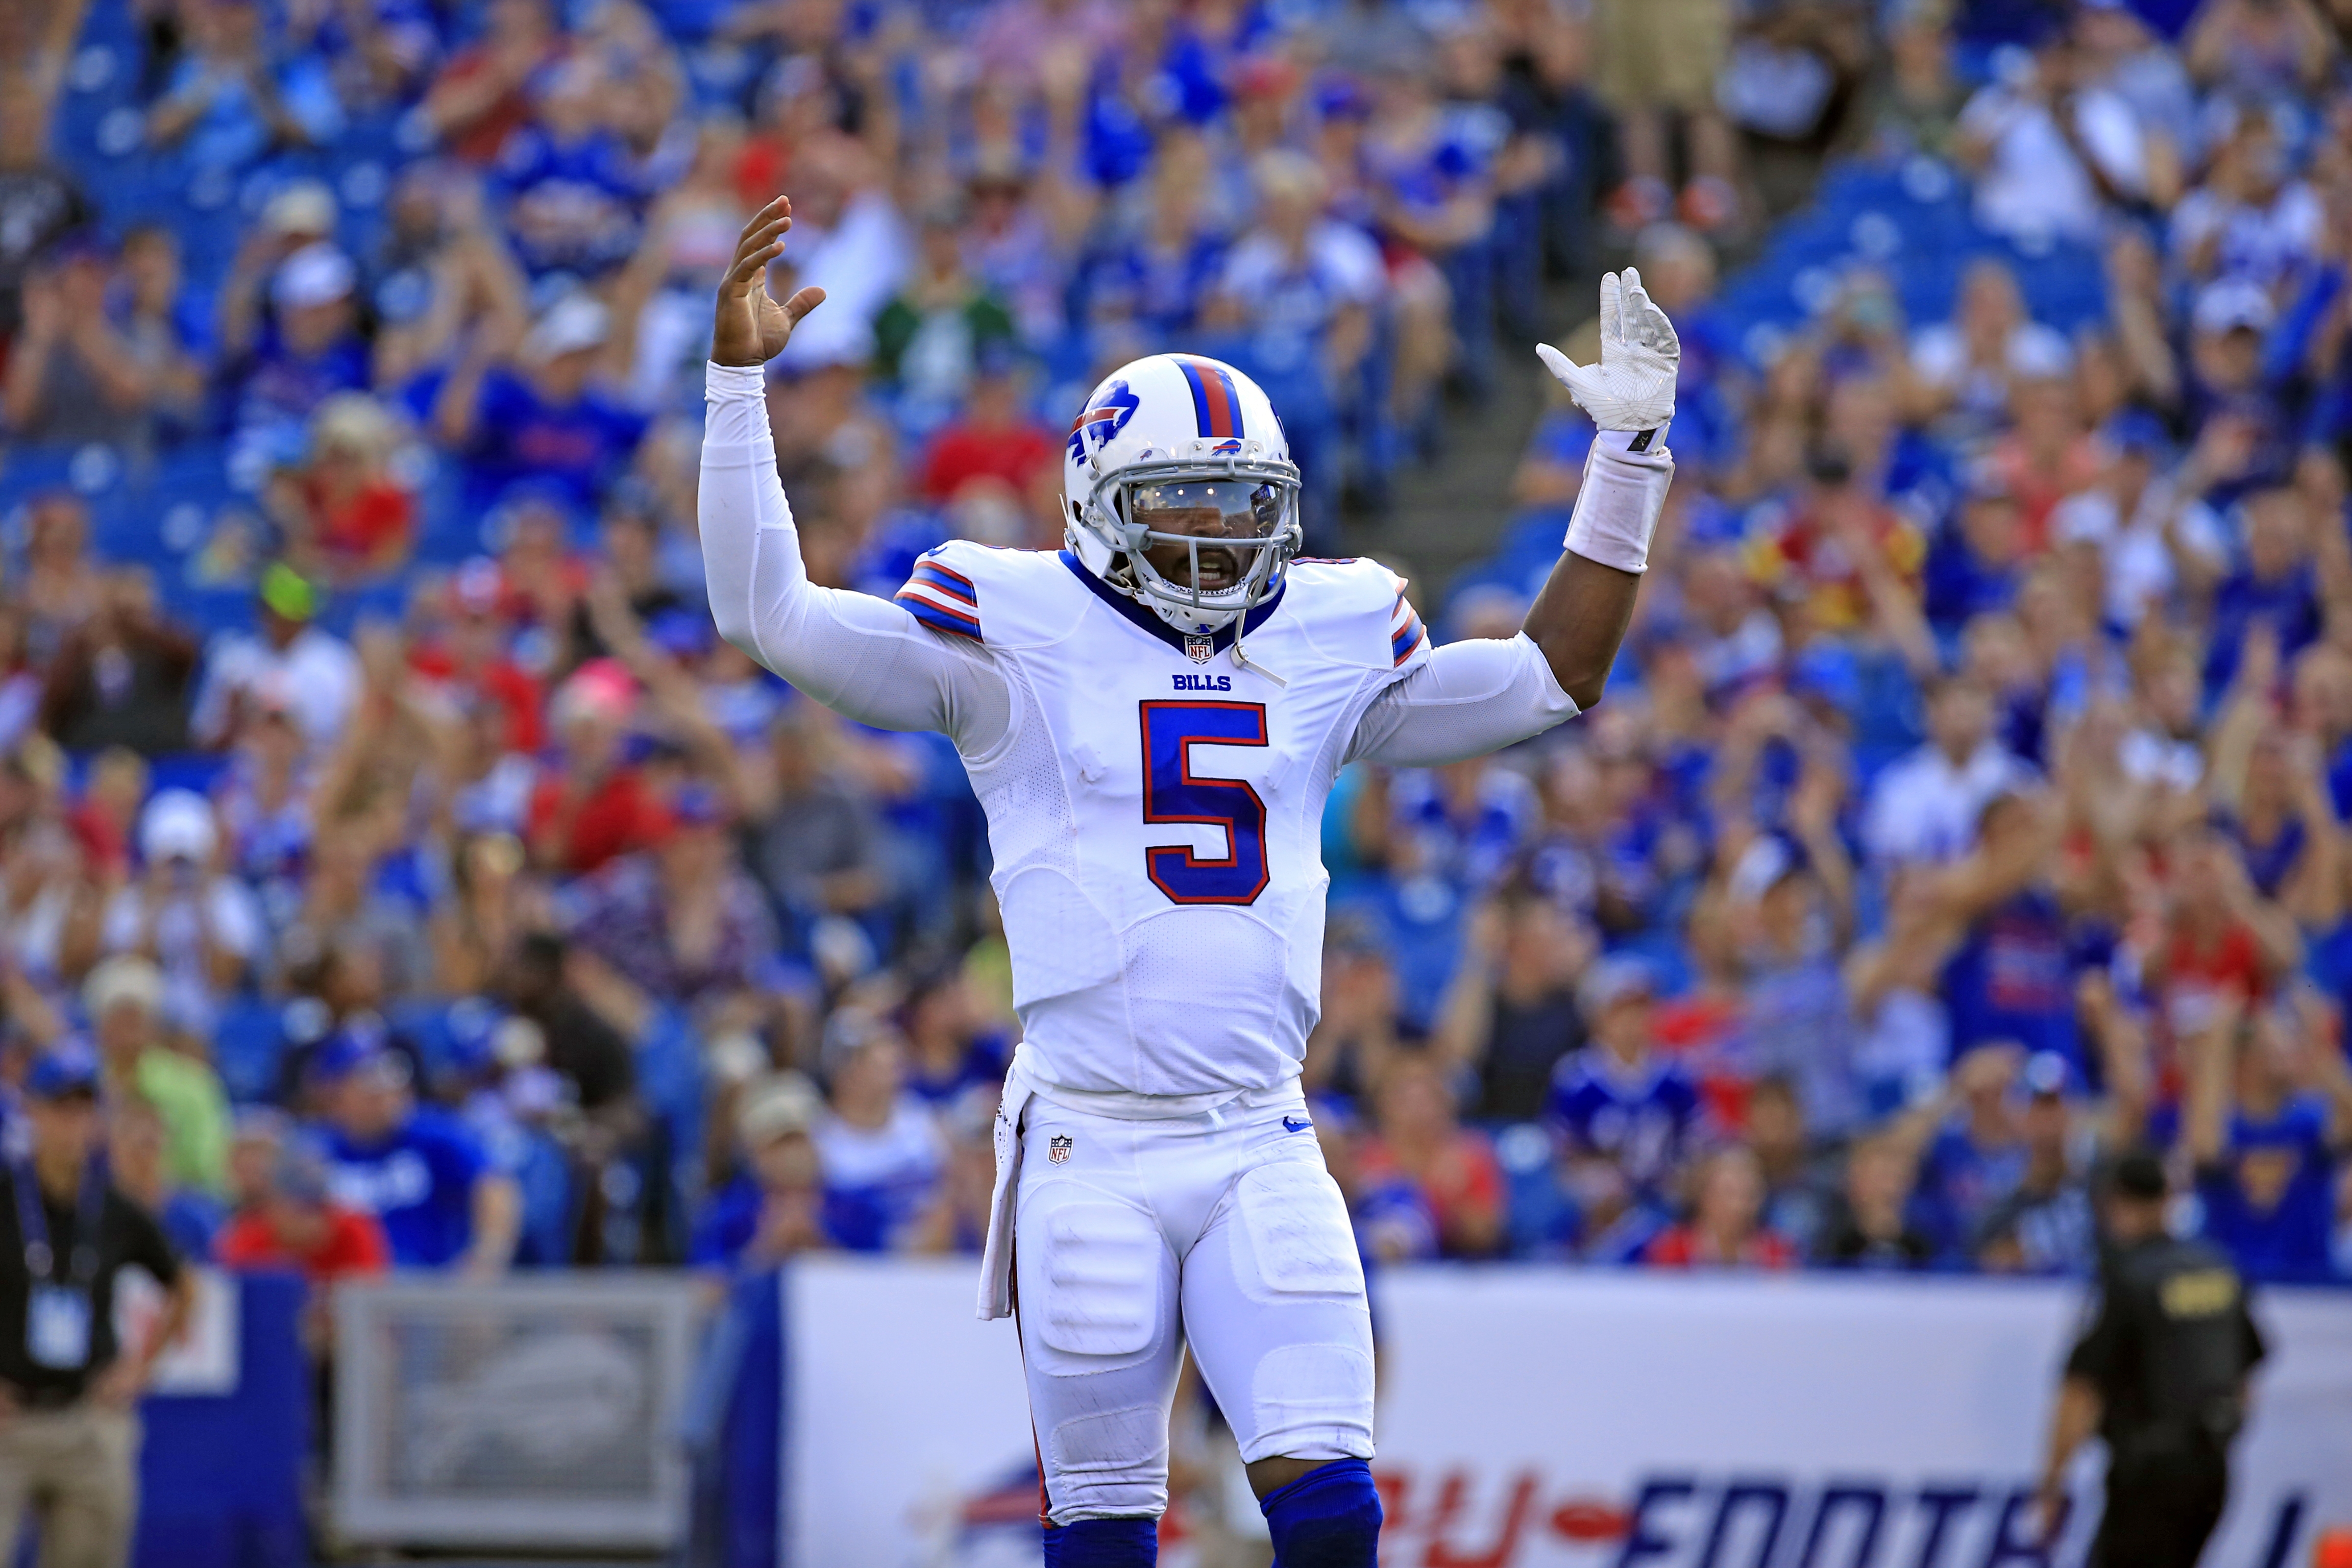 Buffalo Bills Tyrod Taylor celebrates a touchdown against the New York Giants during first quarter action at New Era Field on Saturday, Aug. 20, 2016. (Harry Scull Jr./Buffalo News)